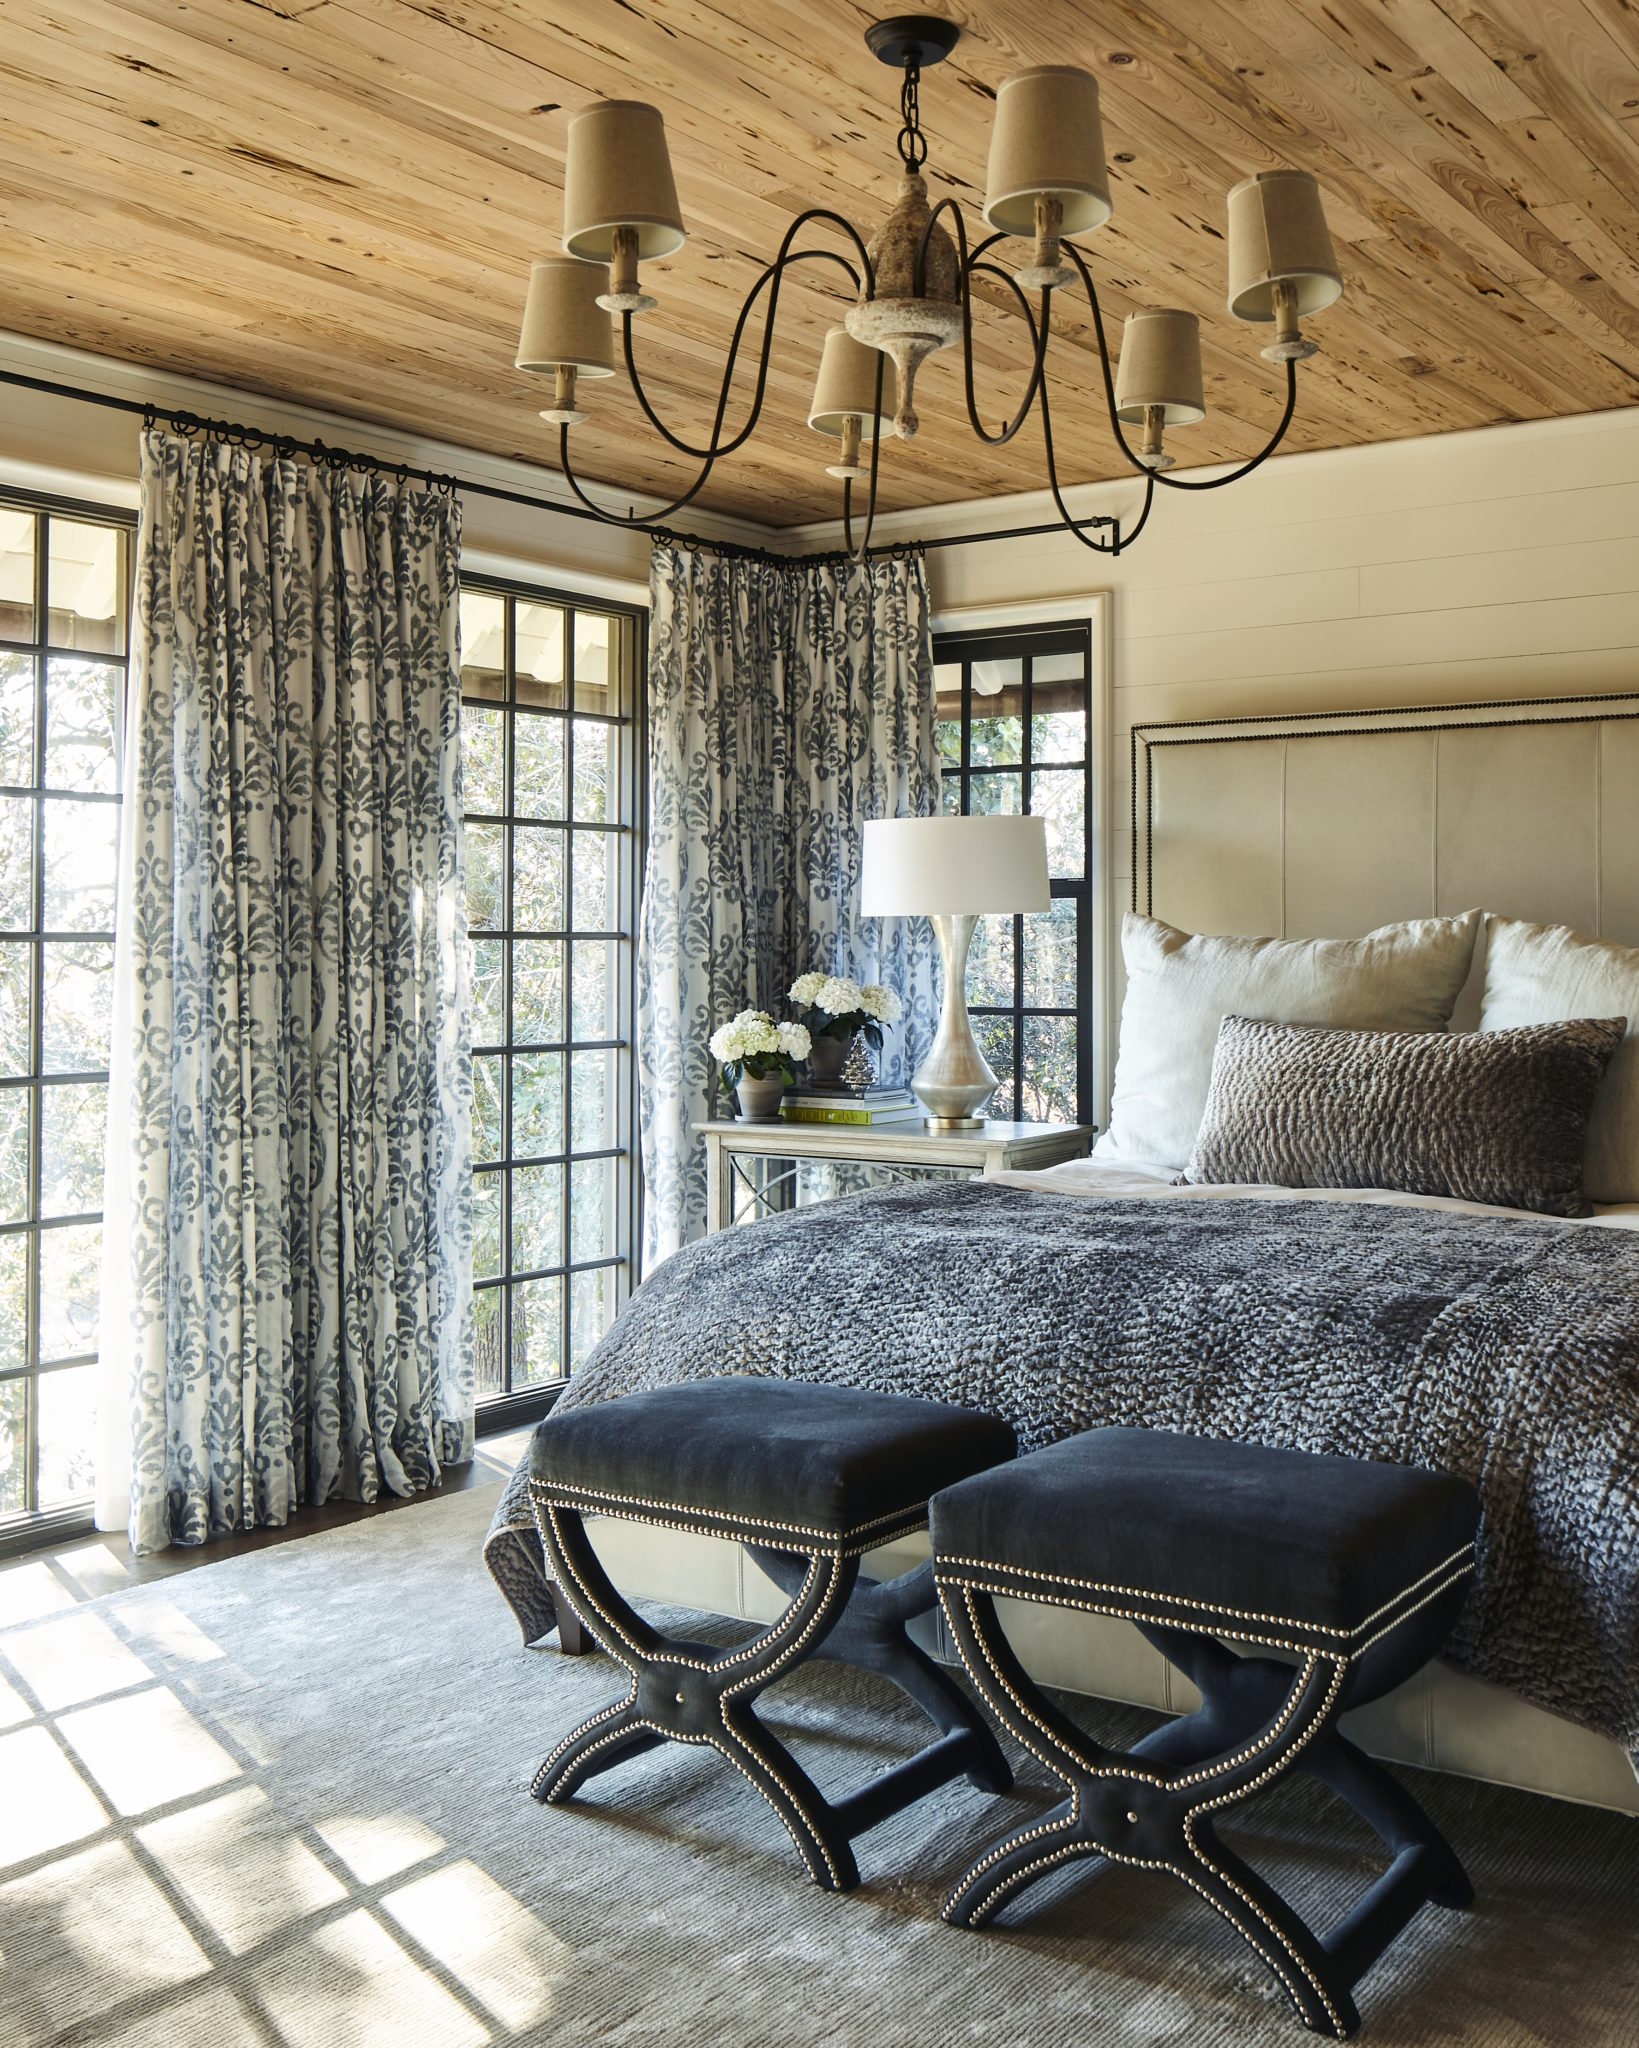 In this cozy, polishedbedroom, the cypress-paneled ceiling offers a dose of warmth to the blue-gray color palette and mixed patterns. The custom drapery was fabricated by Housewarmings in Birmingham, Alabama, and featuresfabric by Osborne & Little. The chic bed frame is by Lee Industries, sourced from Circa Interiors & Antiques in Birmingham; the bed linens are from Three Sheets;and the studded stools are from Arteriors.